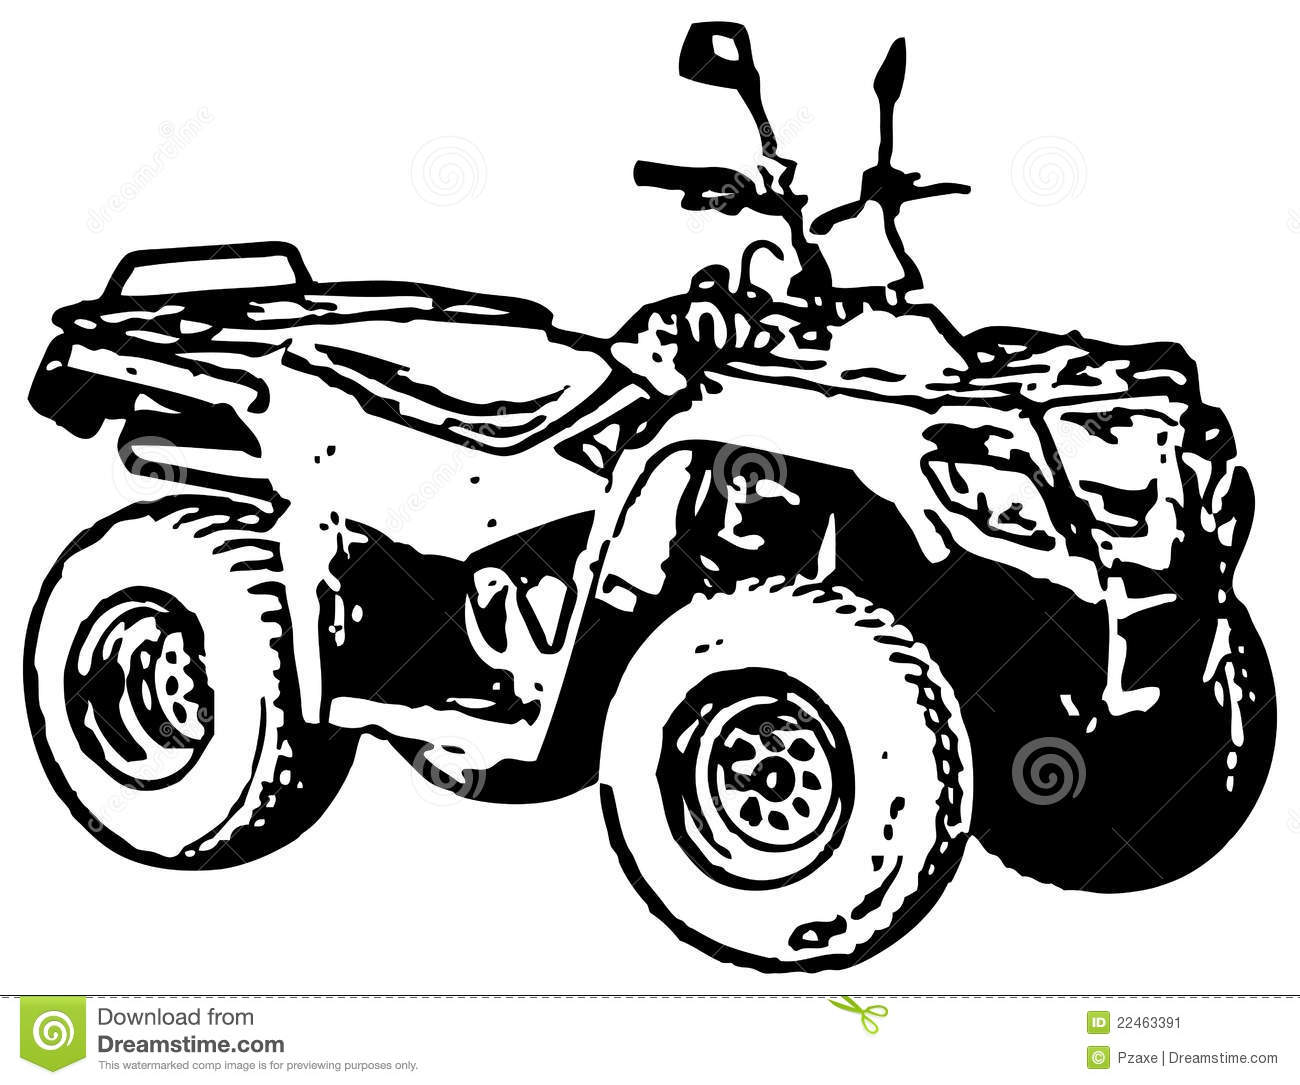 Quad bike clipart